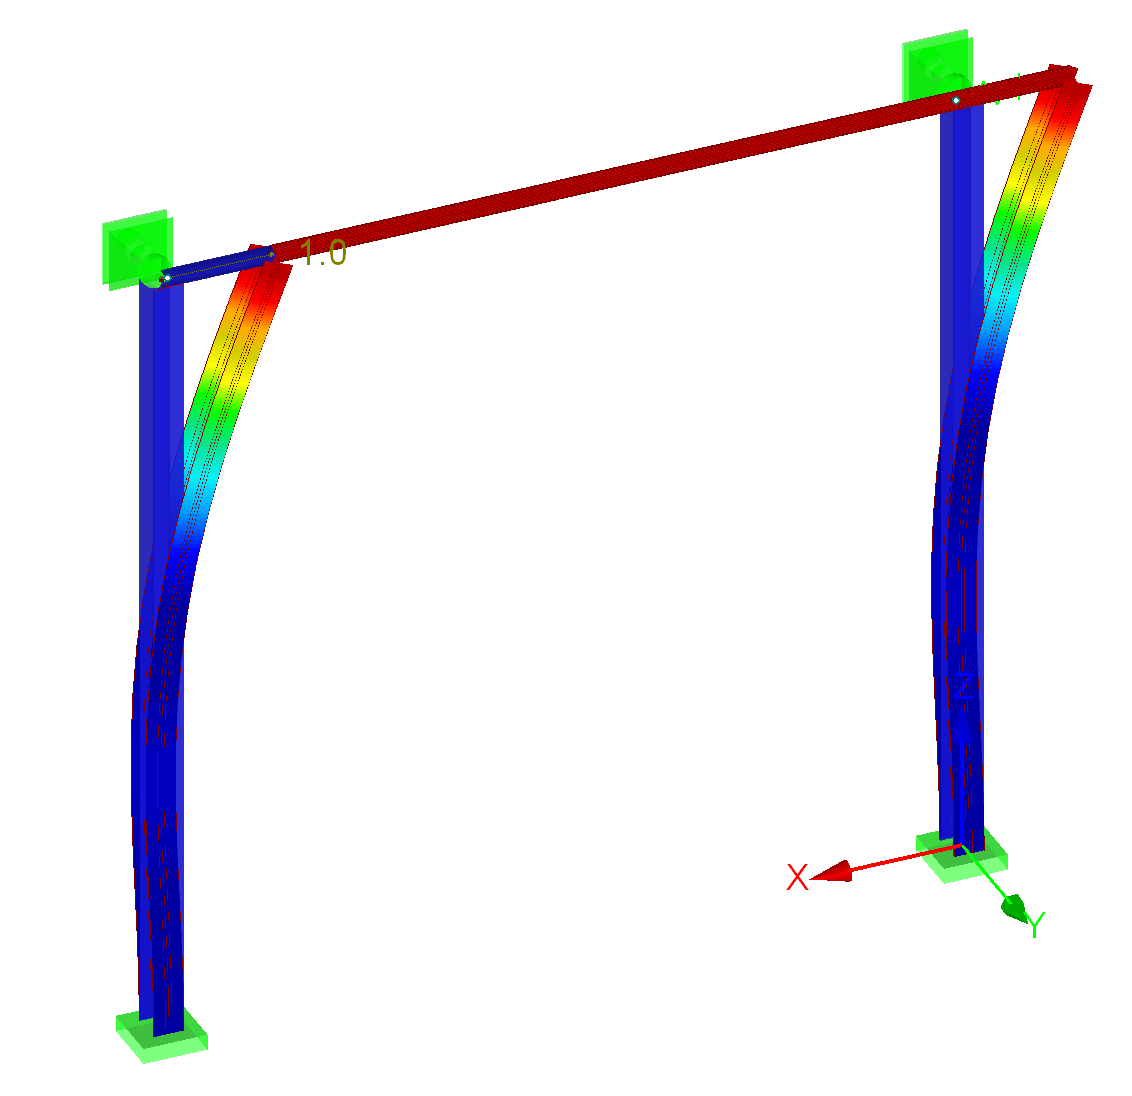 Buckling length in a semi sway frame (LBA)